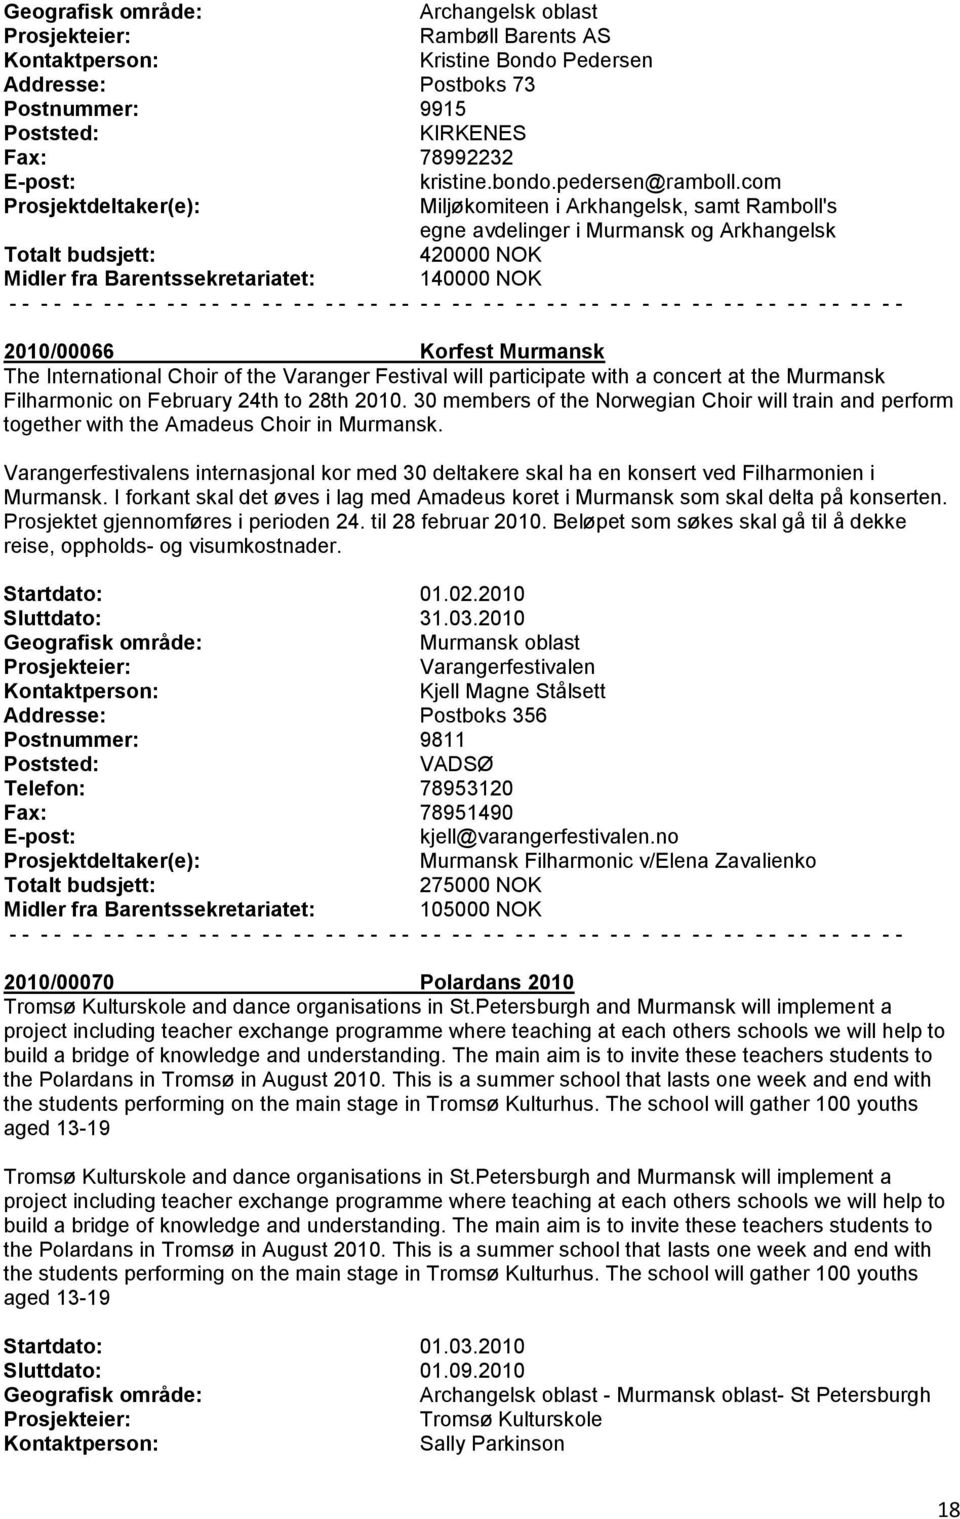 the Varanger Festival will participate with a concert at the Murmansk Filharmonic on February 24th to 28th 2010.